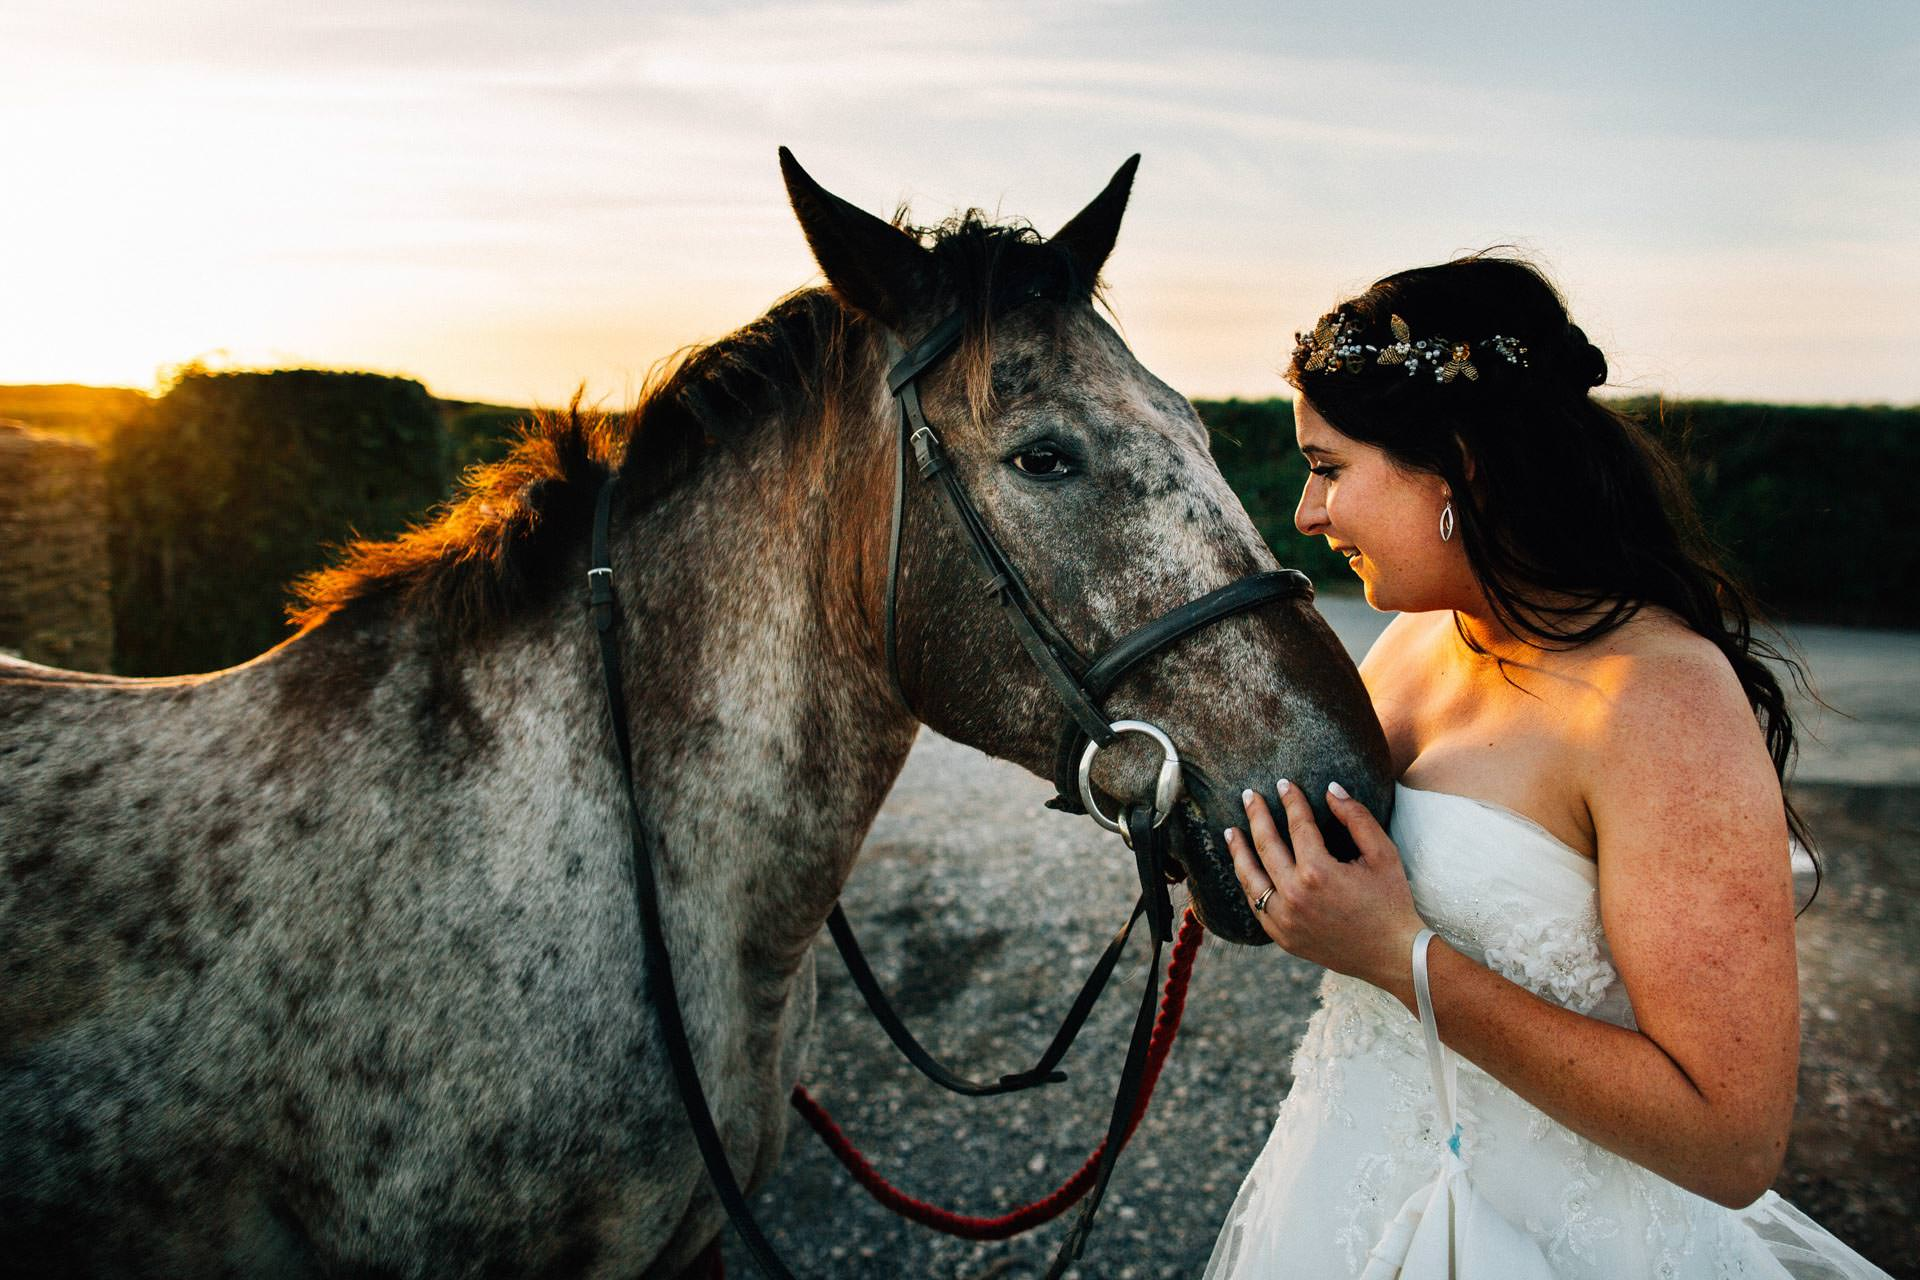 Best wedding photography 2016 - bride with horse at sunset